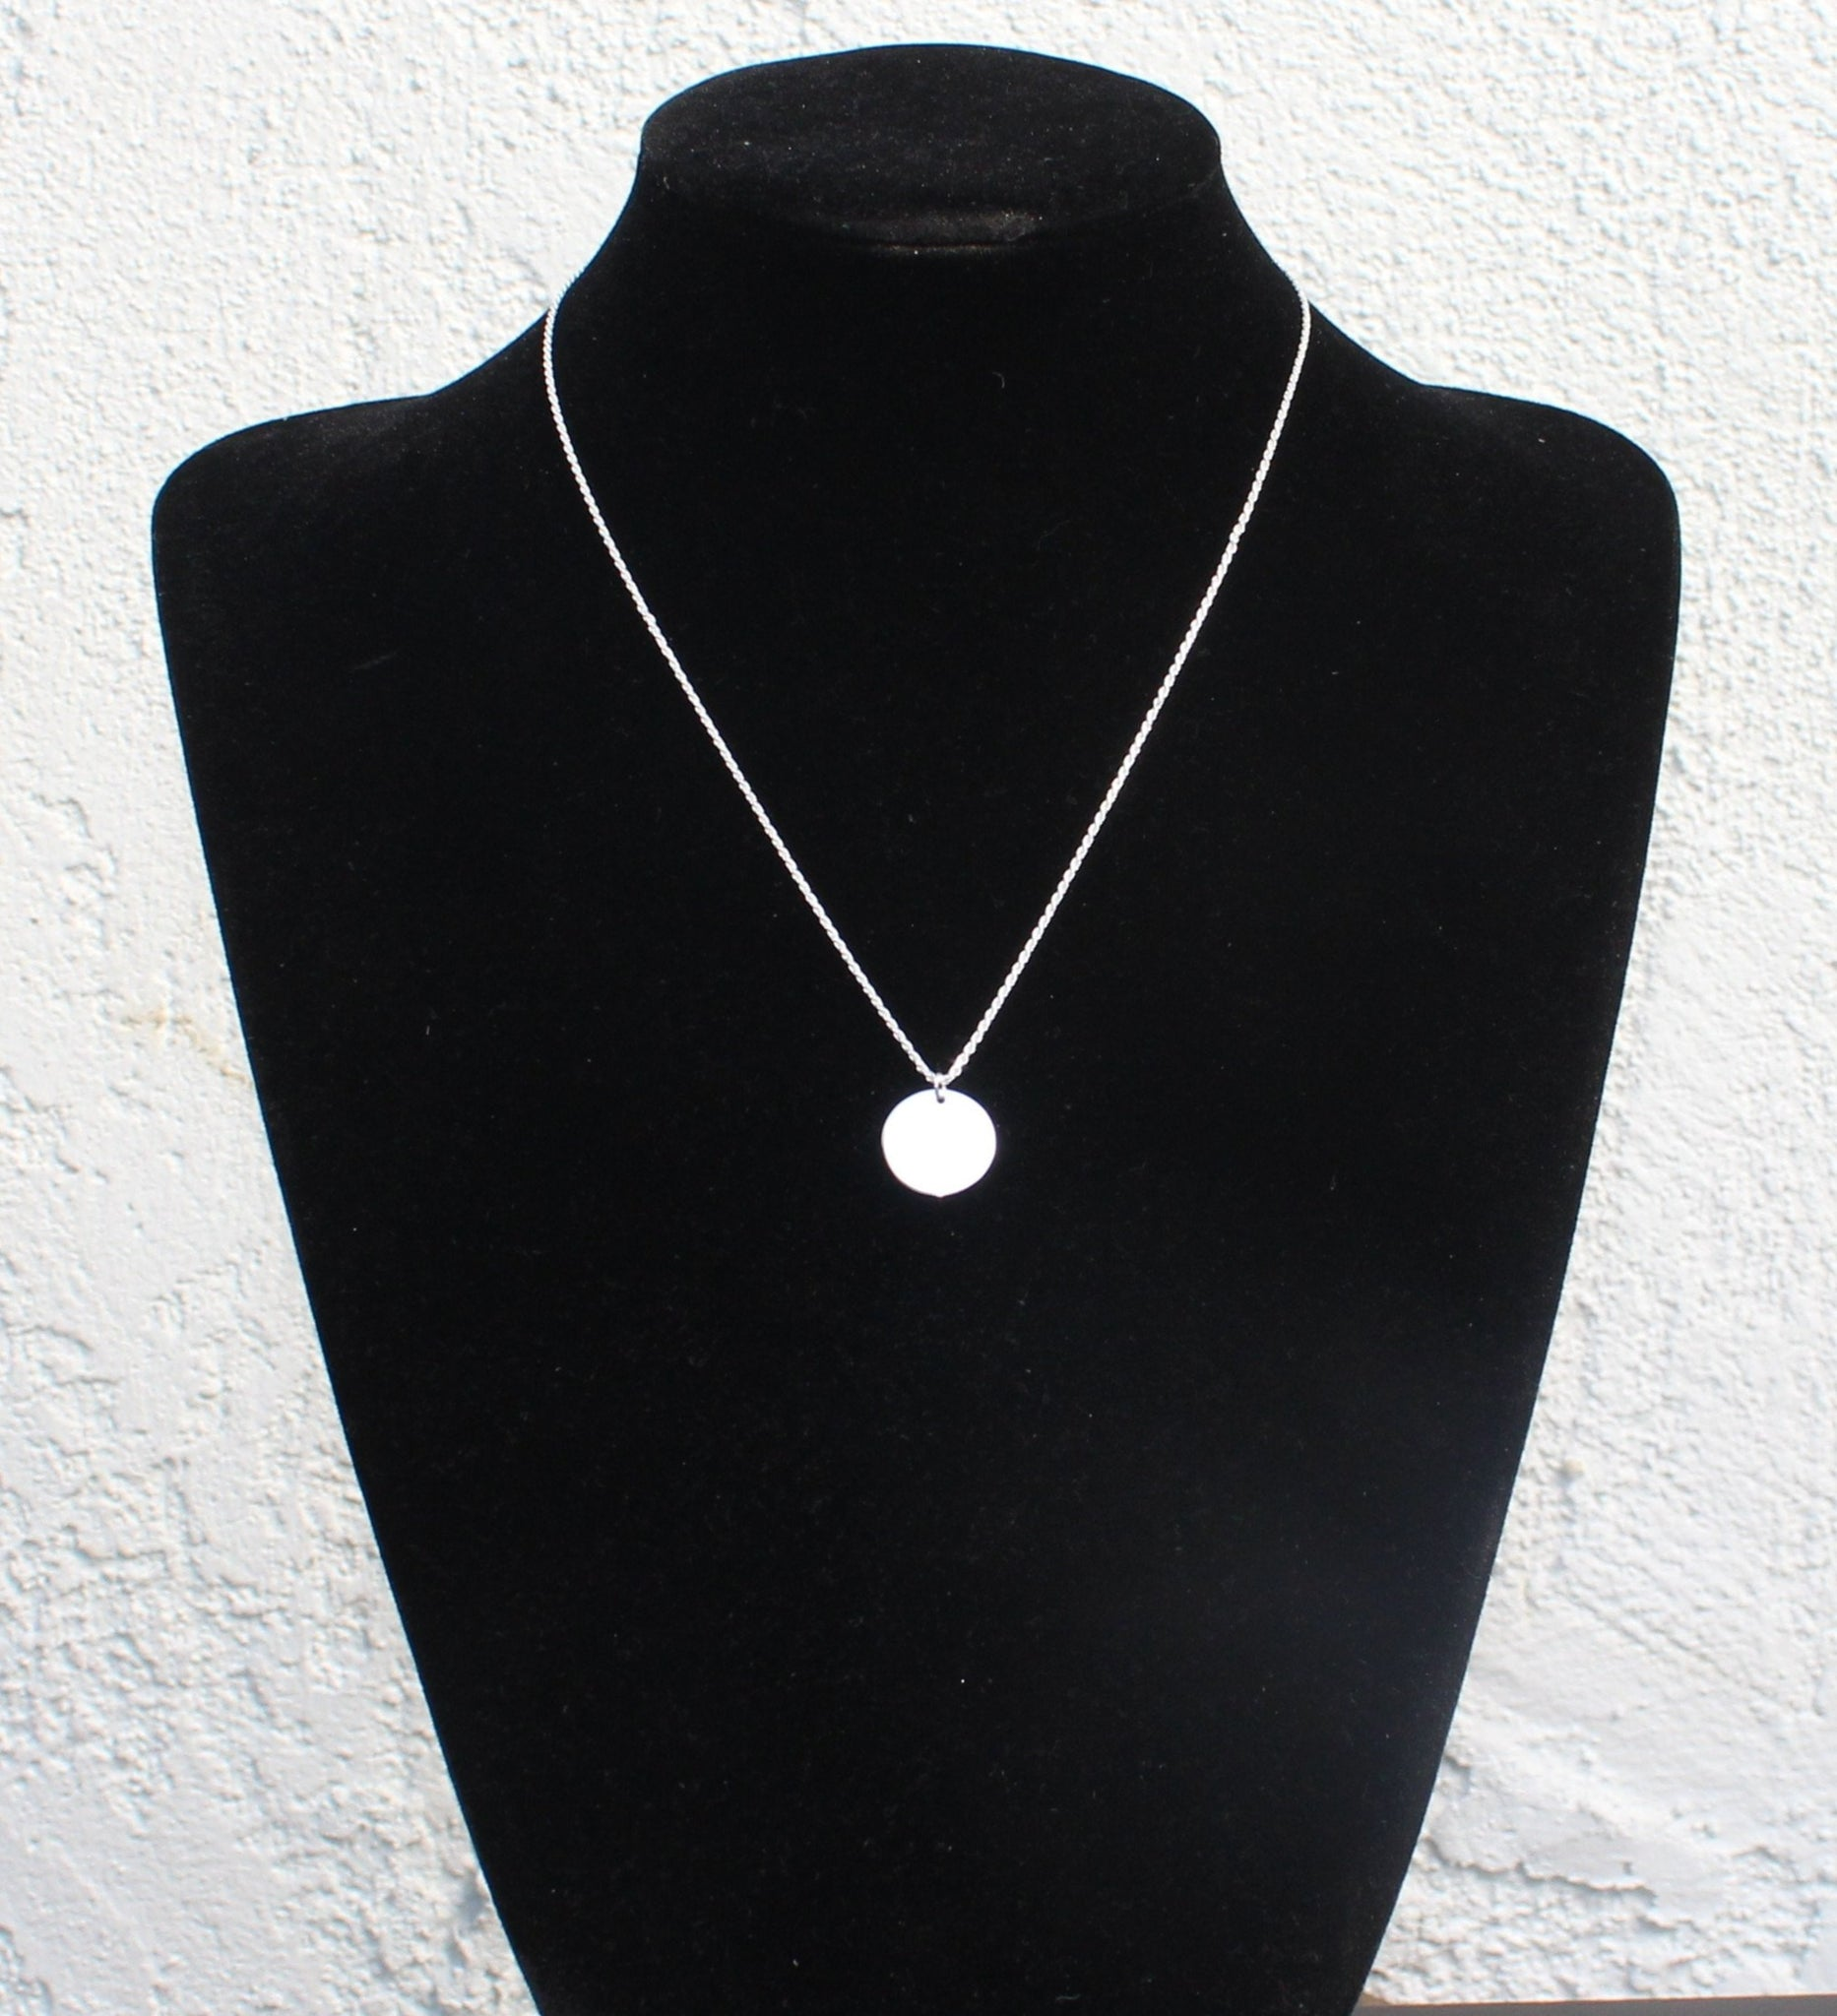 925 Sterling Silver Dainty Minimalist Disk Circle Pendant Diamond Cut Rope Chain Necklace